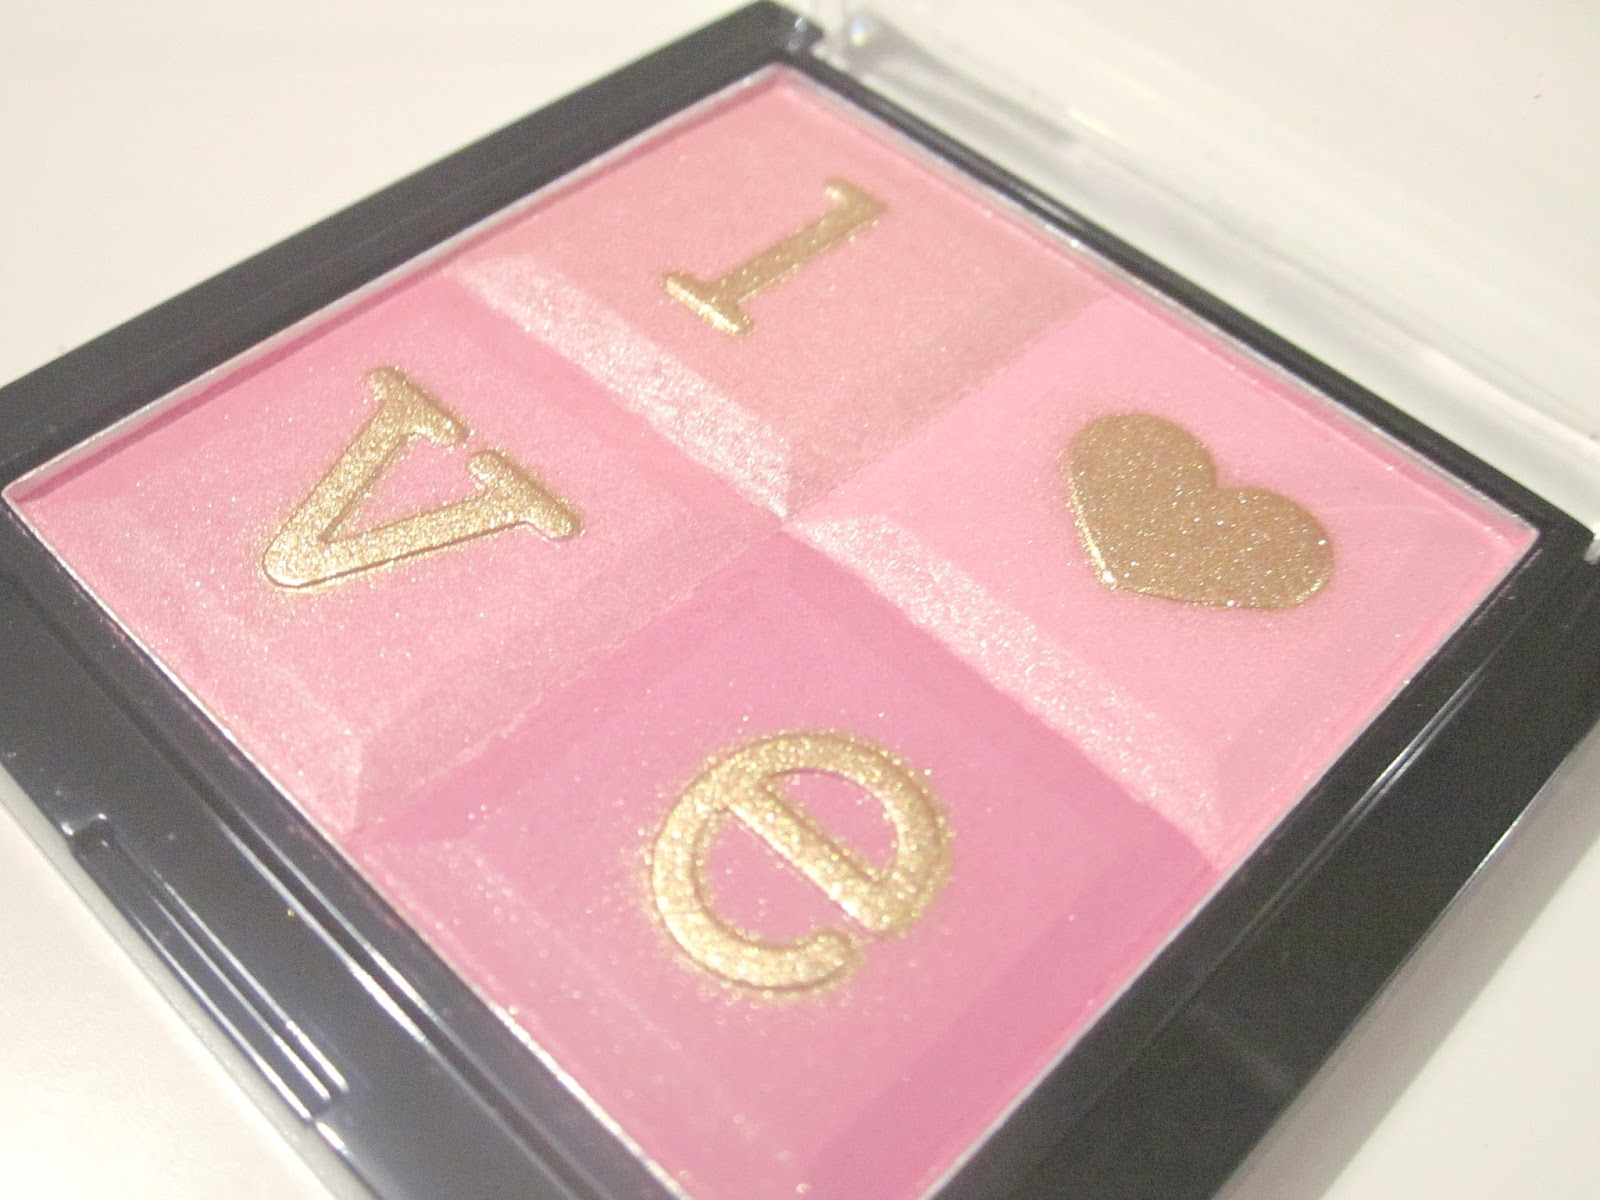 Stila All You Need Is Love Palette